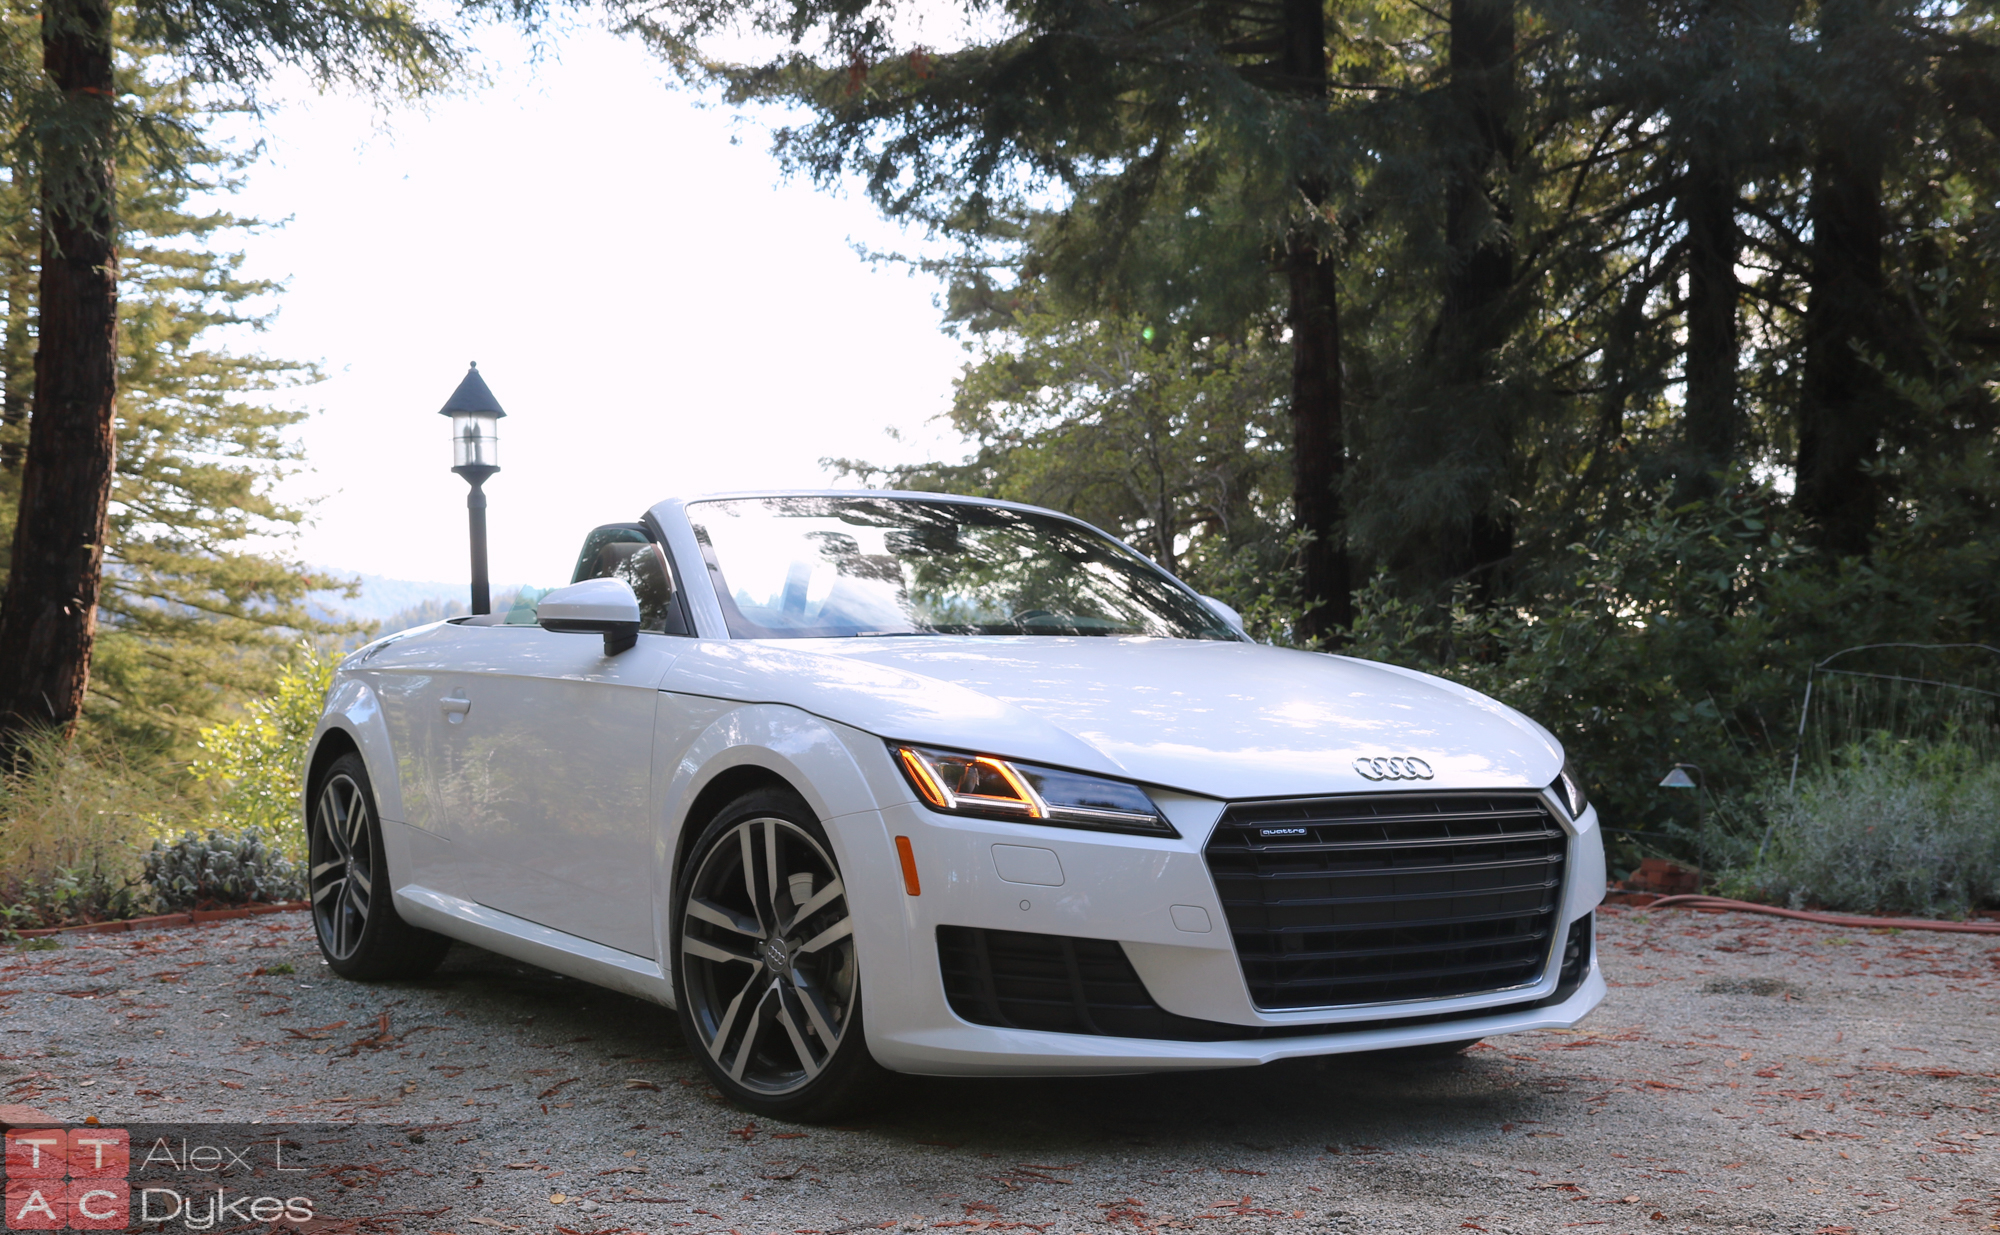 2016 audi tt roadster exterior 002 the truth about cars. Black Bedroom Furniture Sets. Home Design Ideas